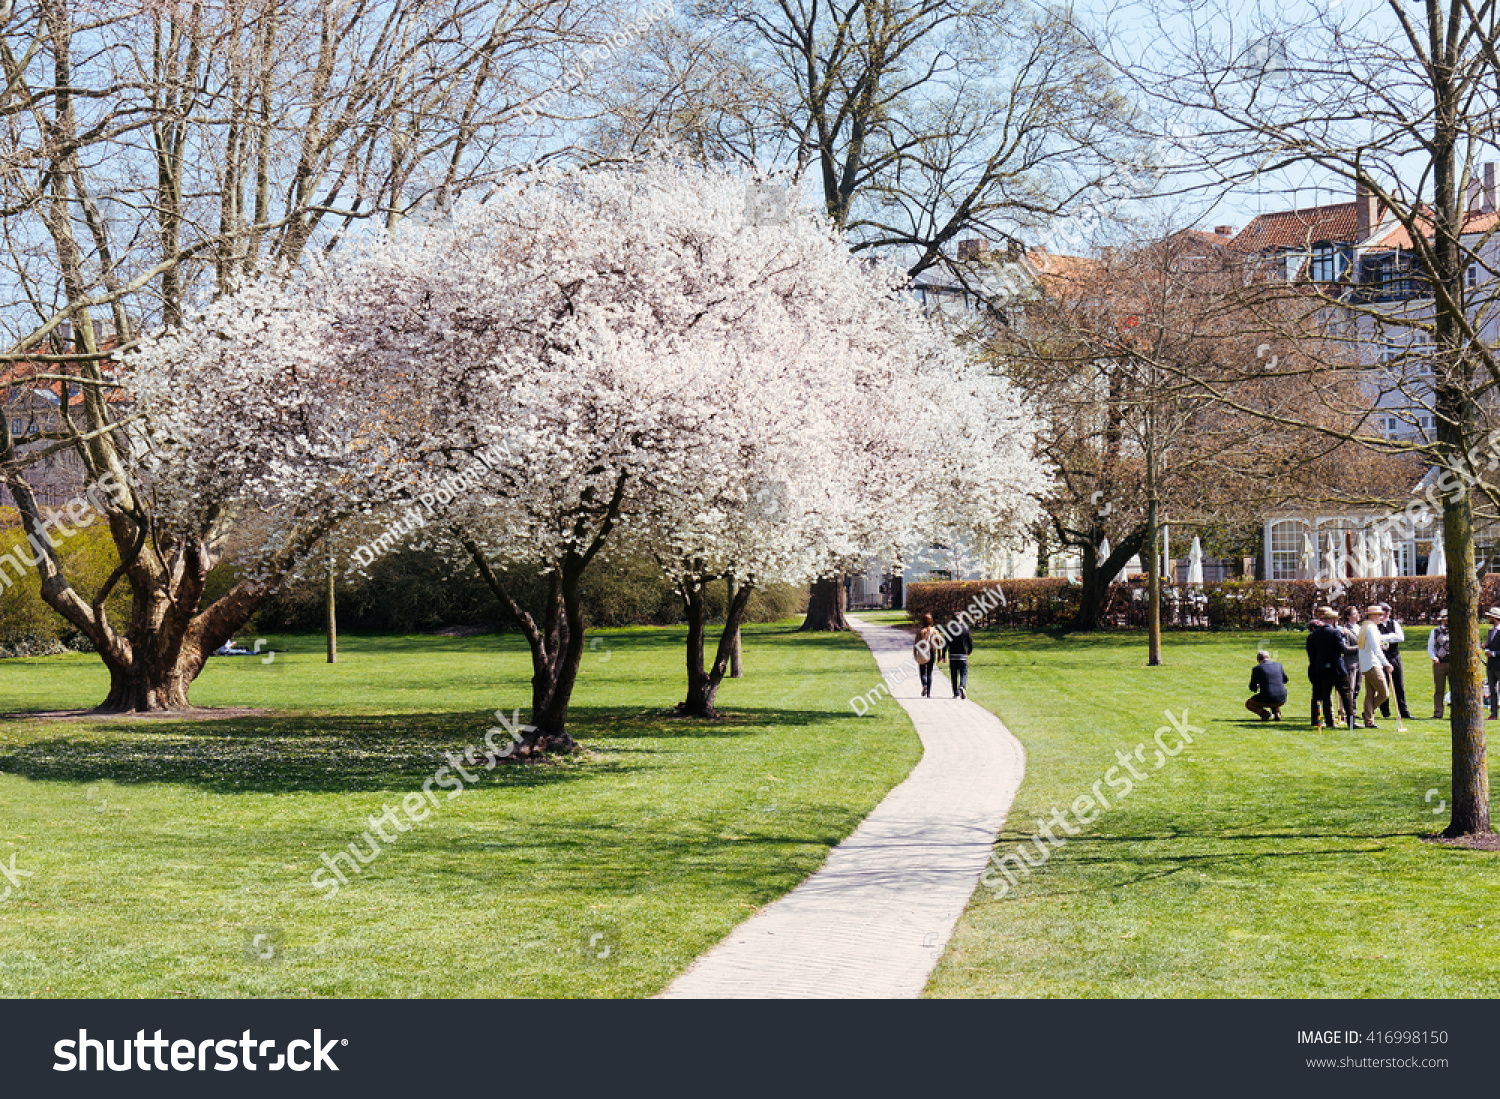 White flowers tree blooming spring green stock photo royalty free white flowers tree blooming at spring in green park copenhagen denmark spring blossom mightylinksfo